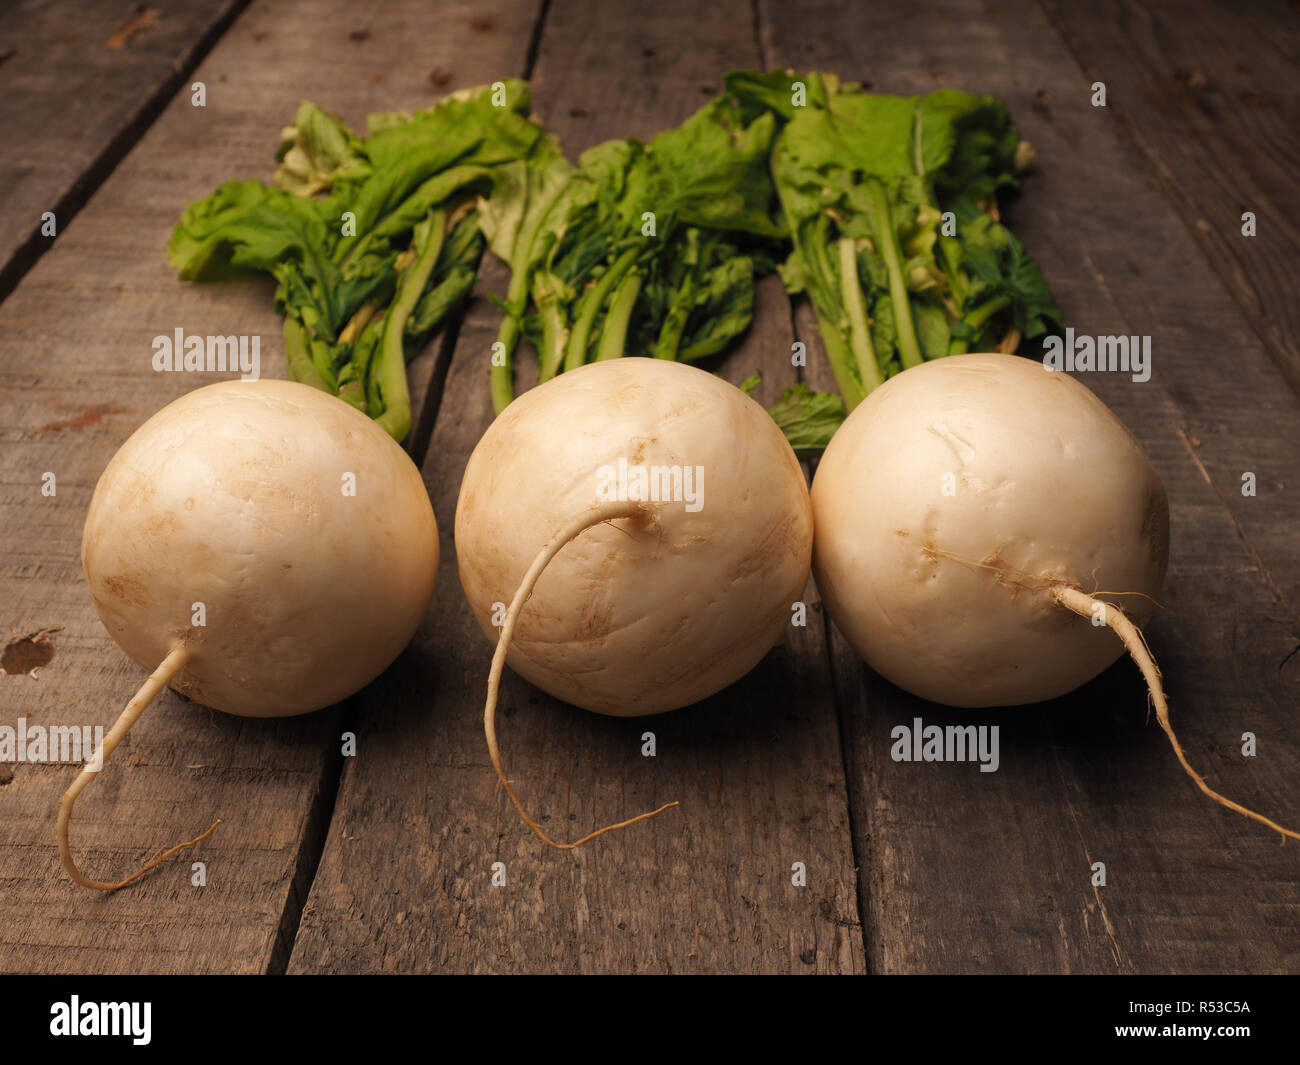 Brassica Rapa Subsp Rapa Var Majalis High Resolution Stock Photography And Images Alamy